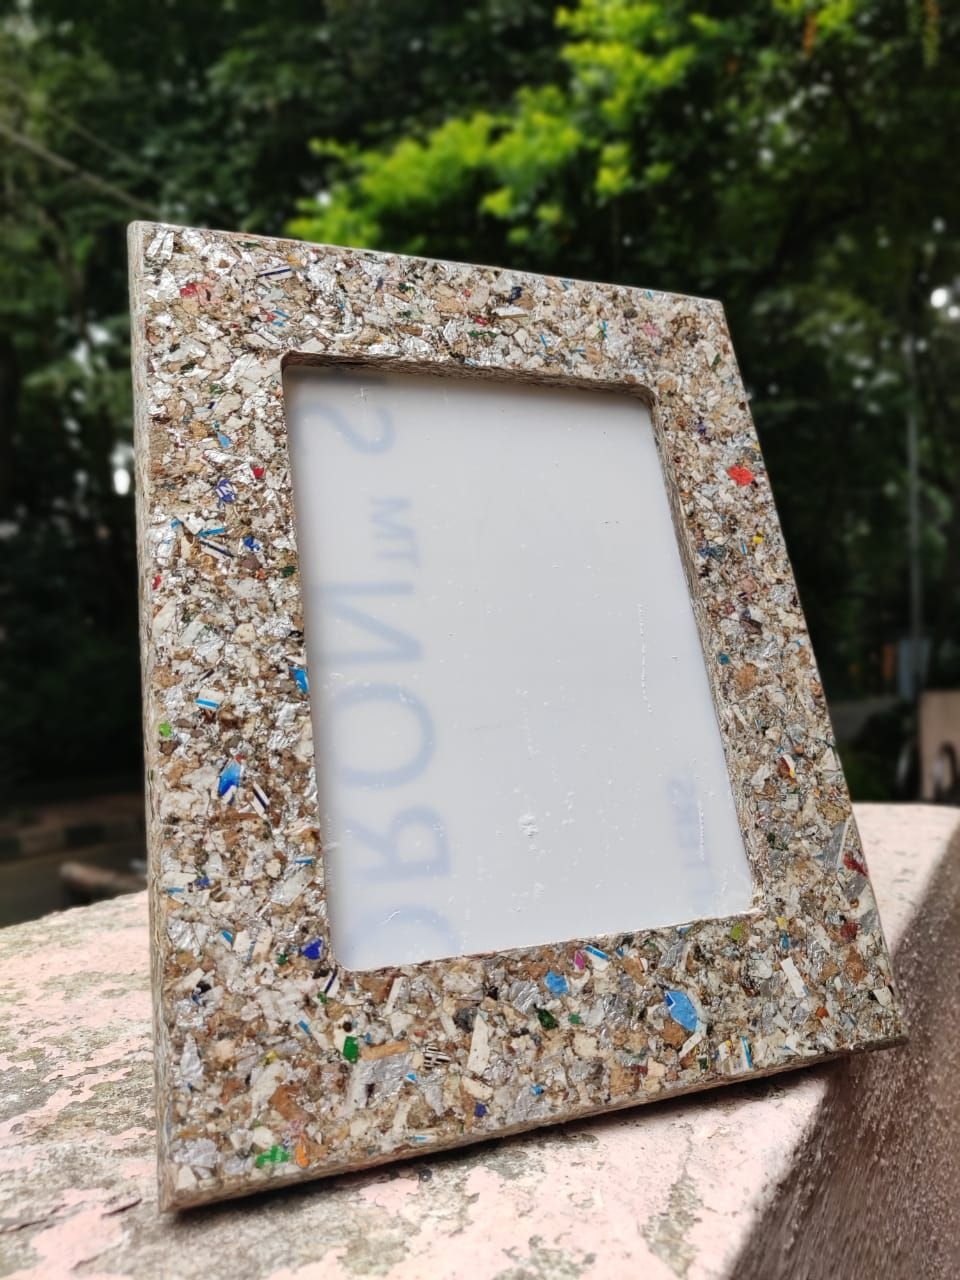 Waste Recycled Products – TETRA PAK PHOTO-FRAME (REPROCESSED)